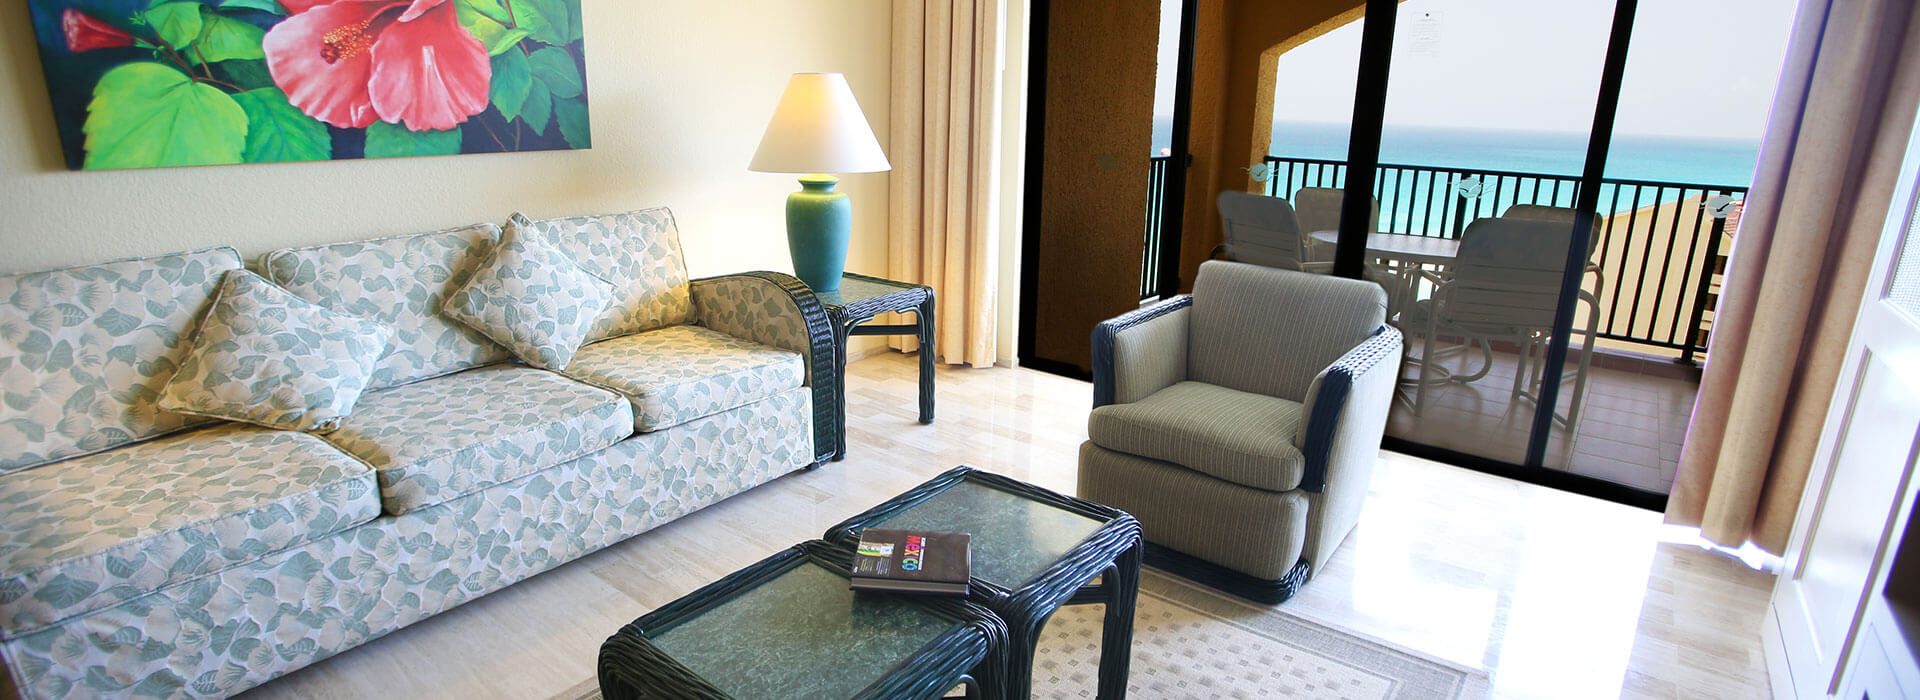 suite in cancun resort with living room